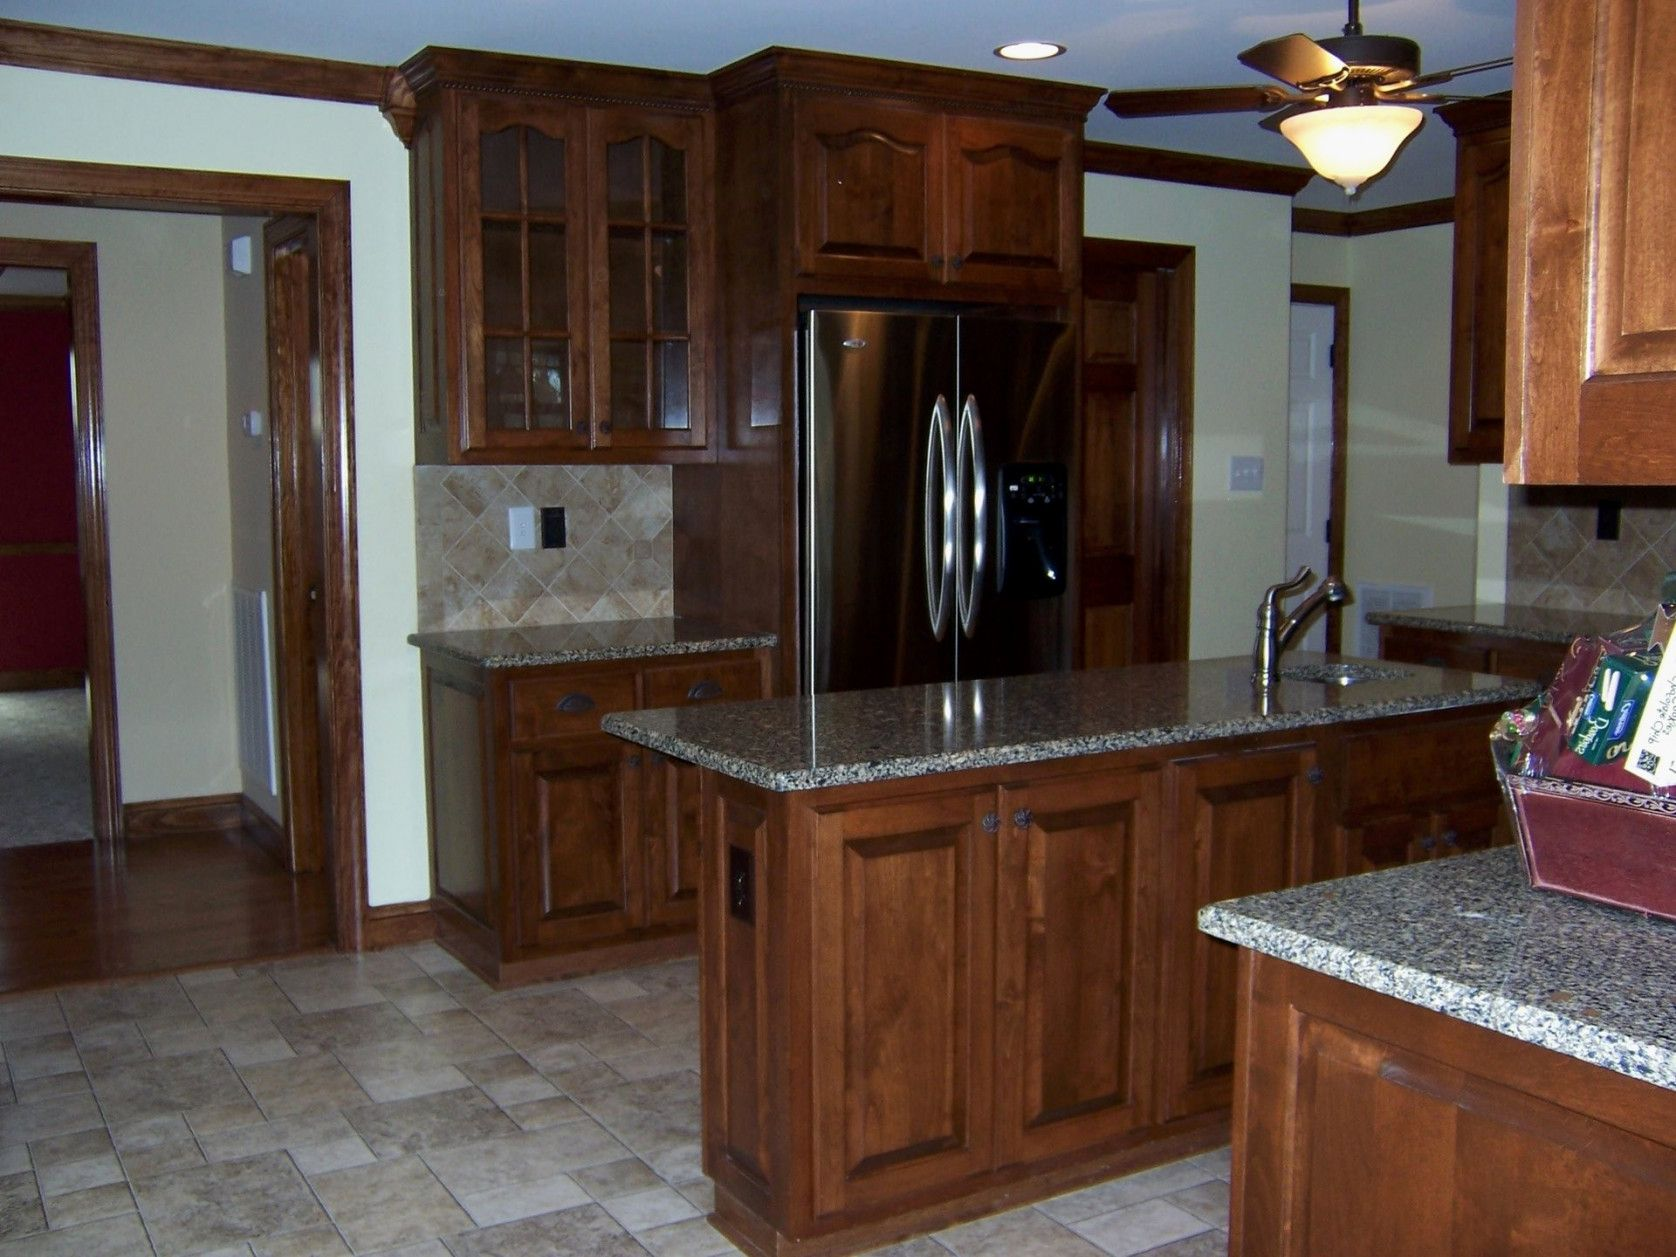 99 Kitchen Cabinets Fayetteville Nc Apartment Kitchen Cabinet Ideas Check More At Http Www Planetg Kitchen Decor Themes Apartment Kitchen Kitchen Cabinets